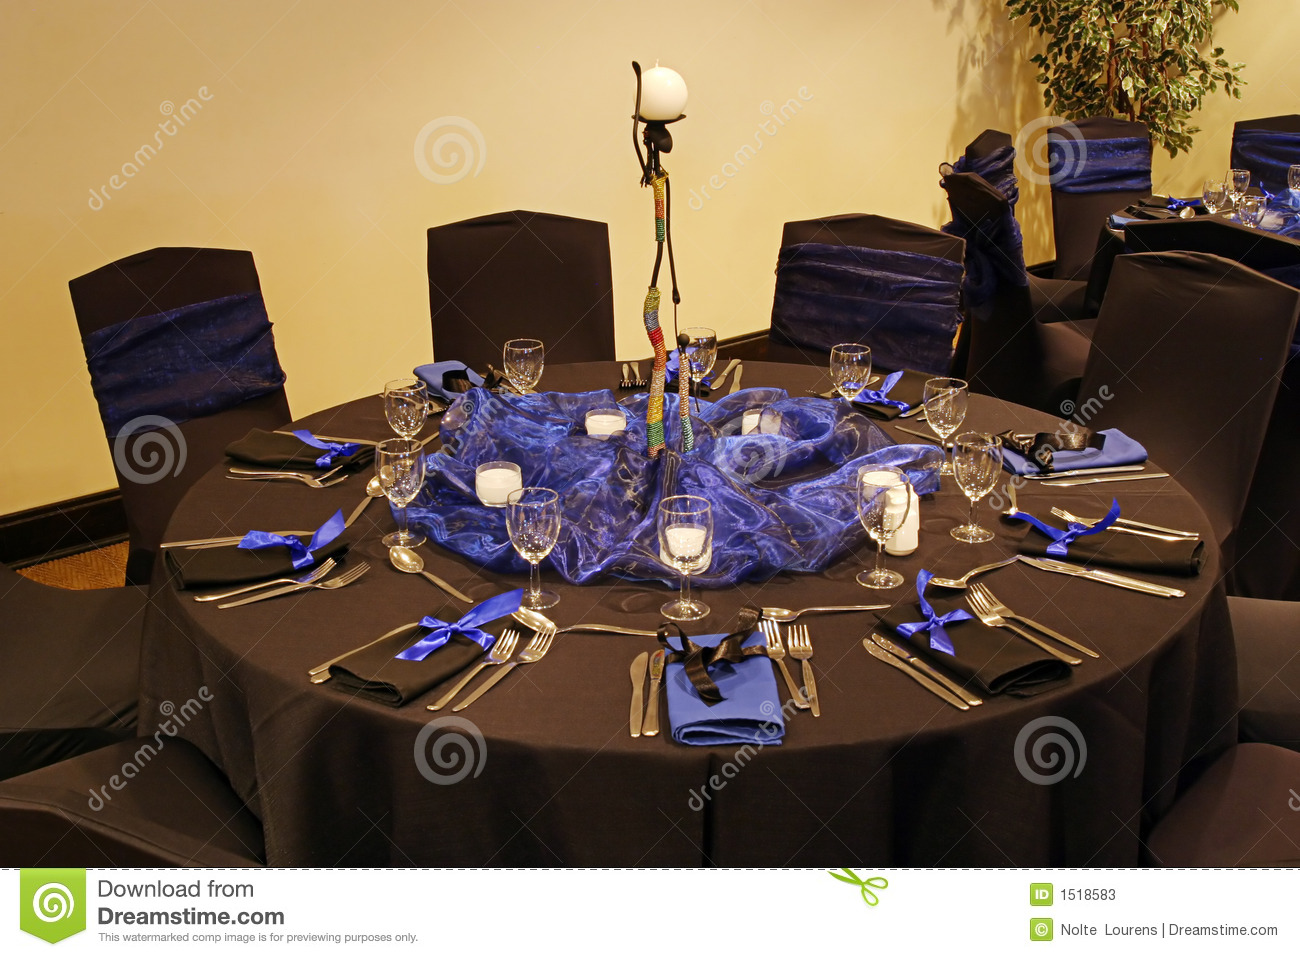 Black table setting stock image Image of theme  : black table setting 1518583 from www.dreamstime.com size 1300 x 957 jpeg 361kB